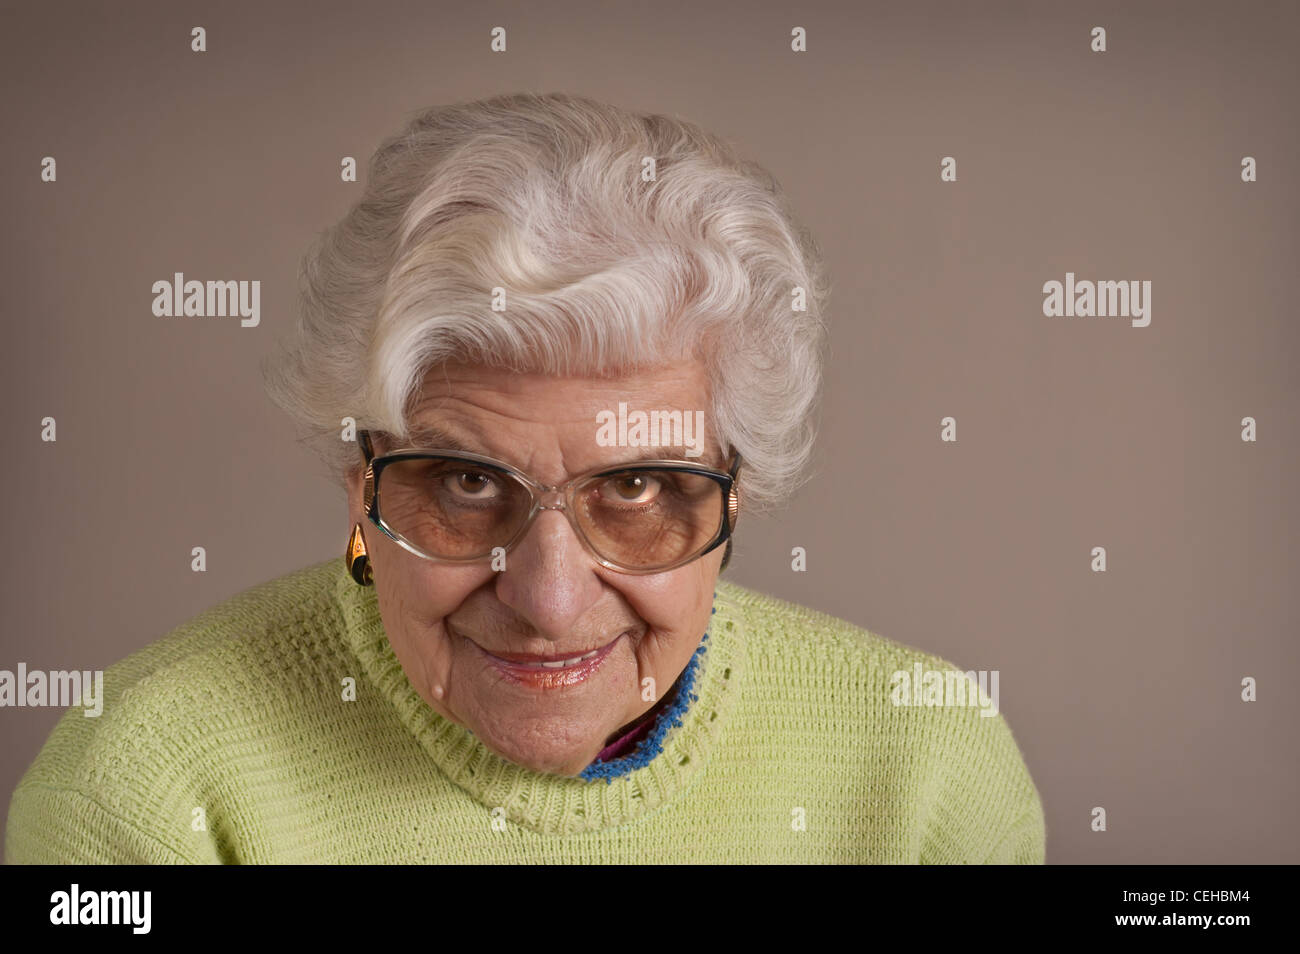 Senior lady portrait, smiling, glasses, with copy space. - Stock Image